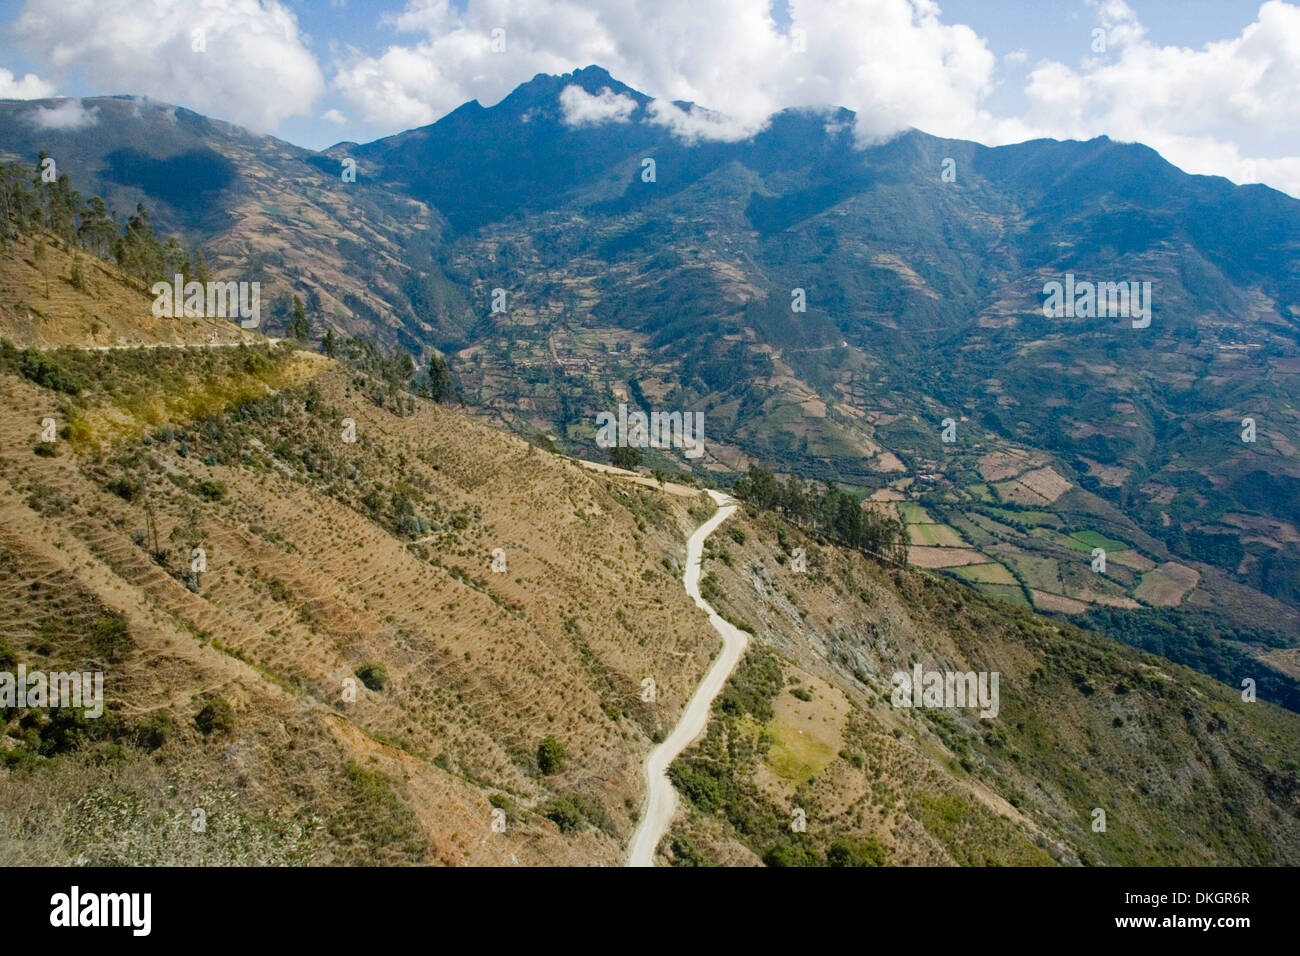 High Narrow Winding Road Through Andes Mountains In Peru With - Where are the andes mountains